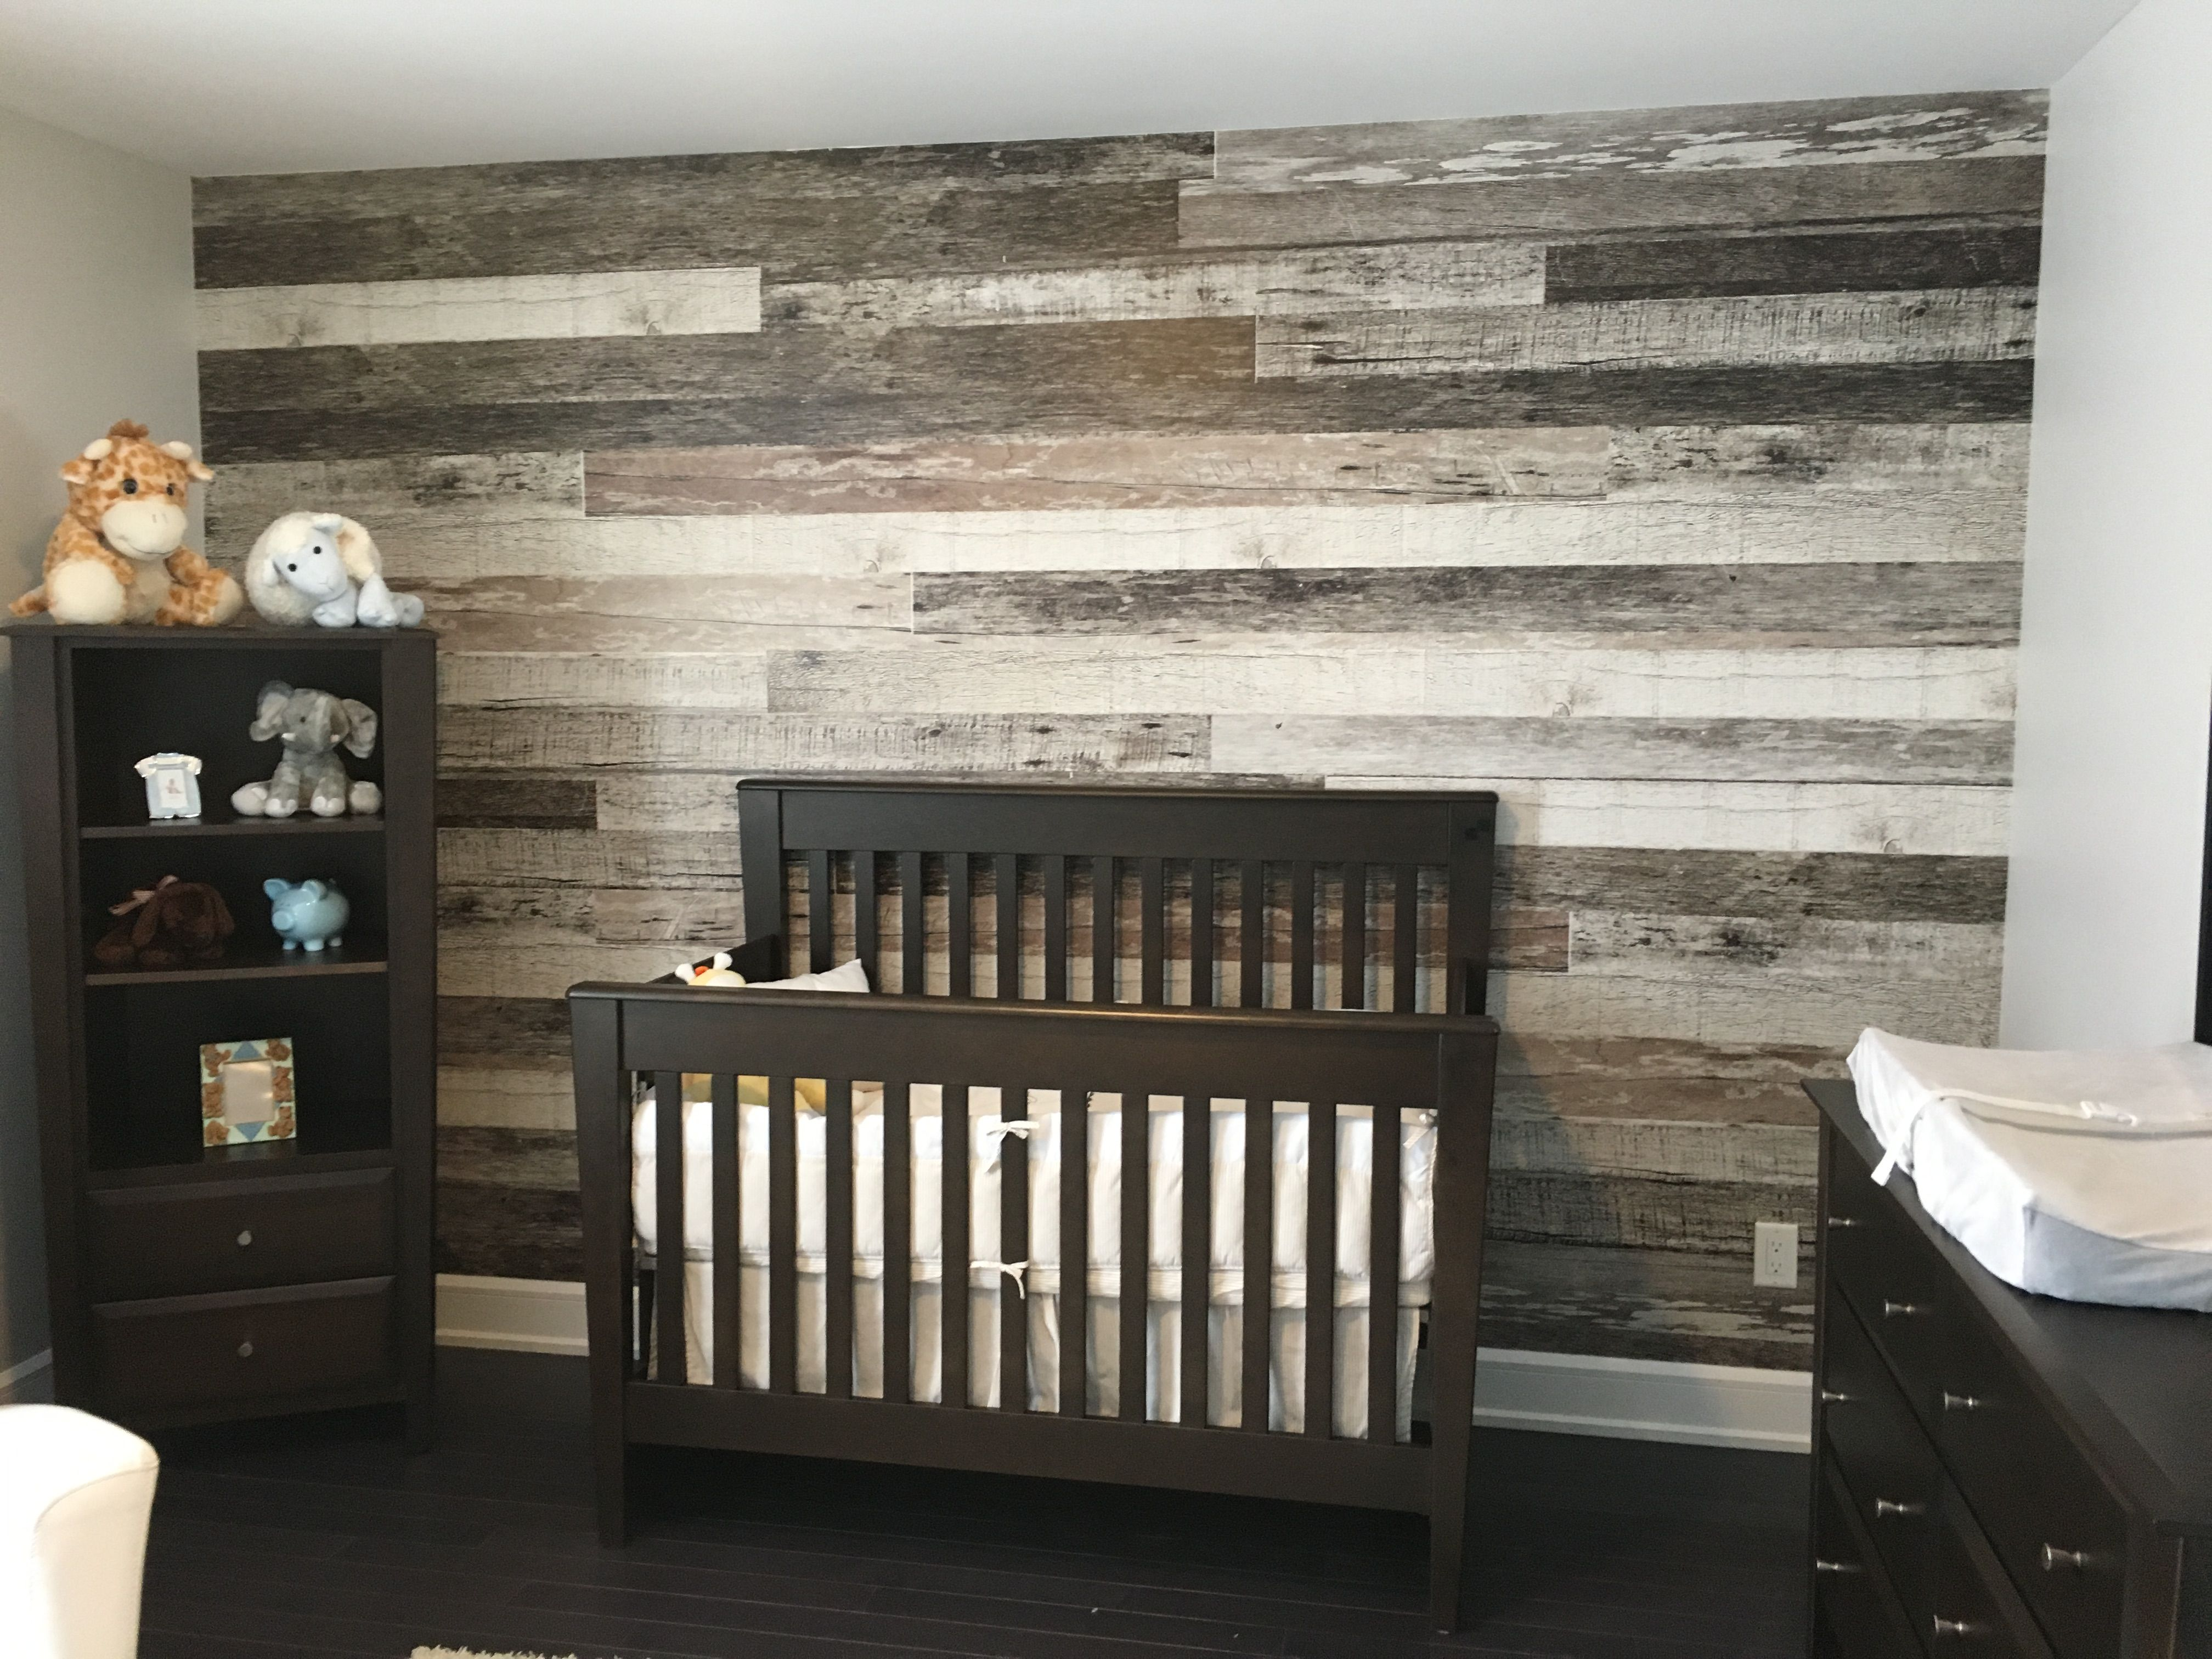 Best Ideas About Wallpaper Accent Walls On Pinterest Painting - Wallpaper designs for living room wall